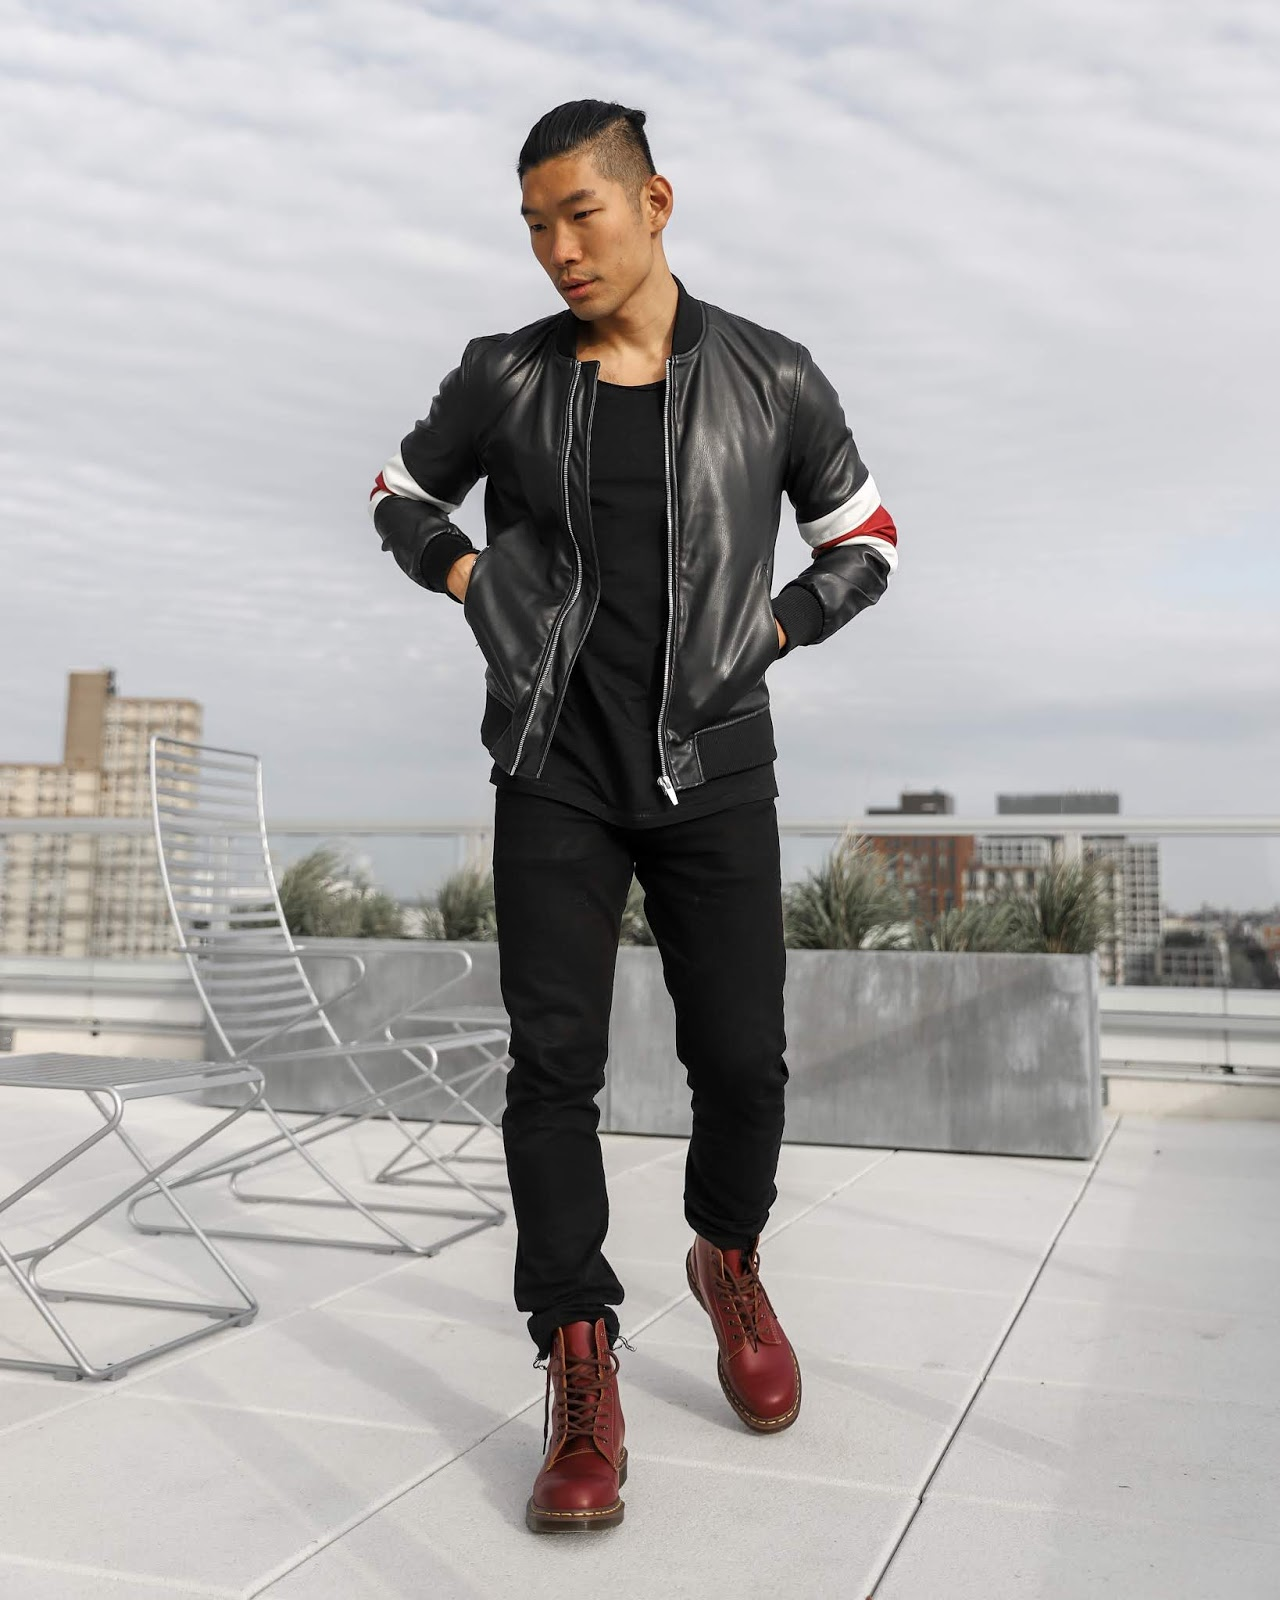 Leo Chan wearing Leather Jacket and Oxblood Dr Marten Combat Boots